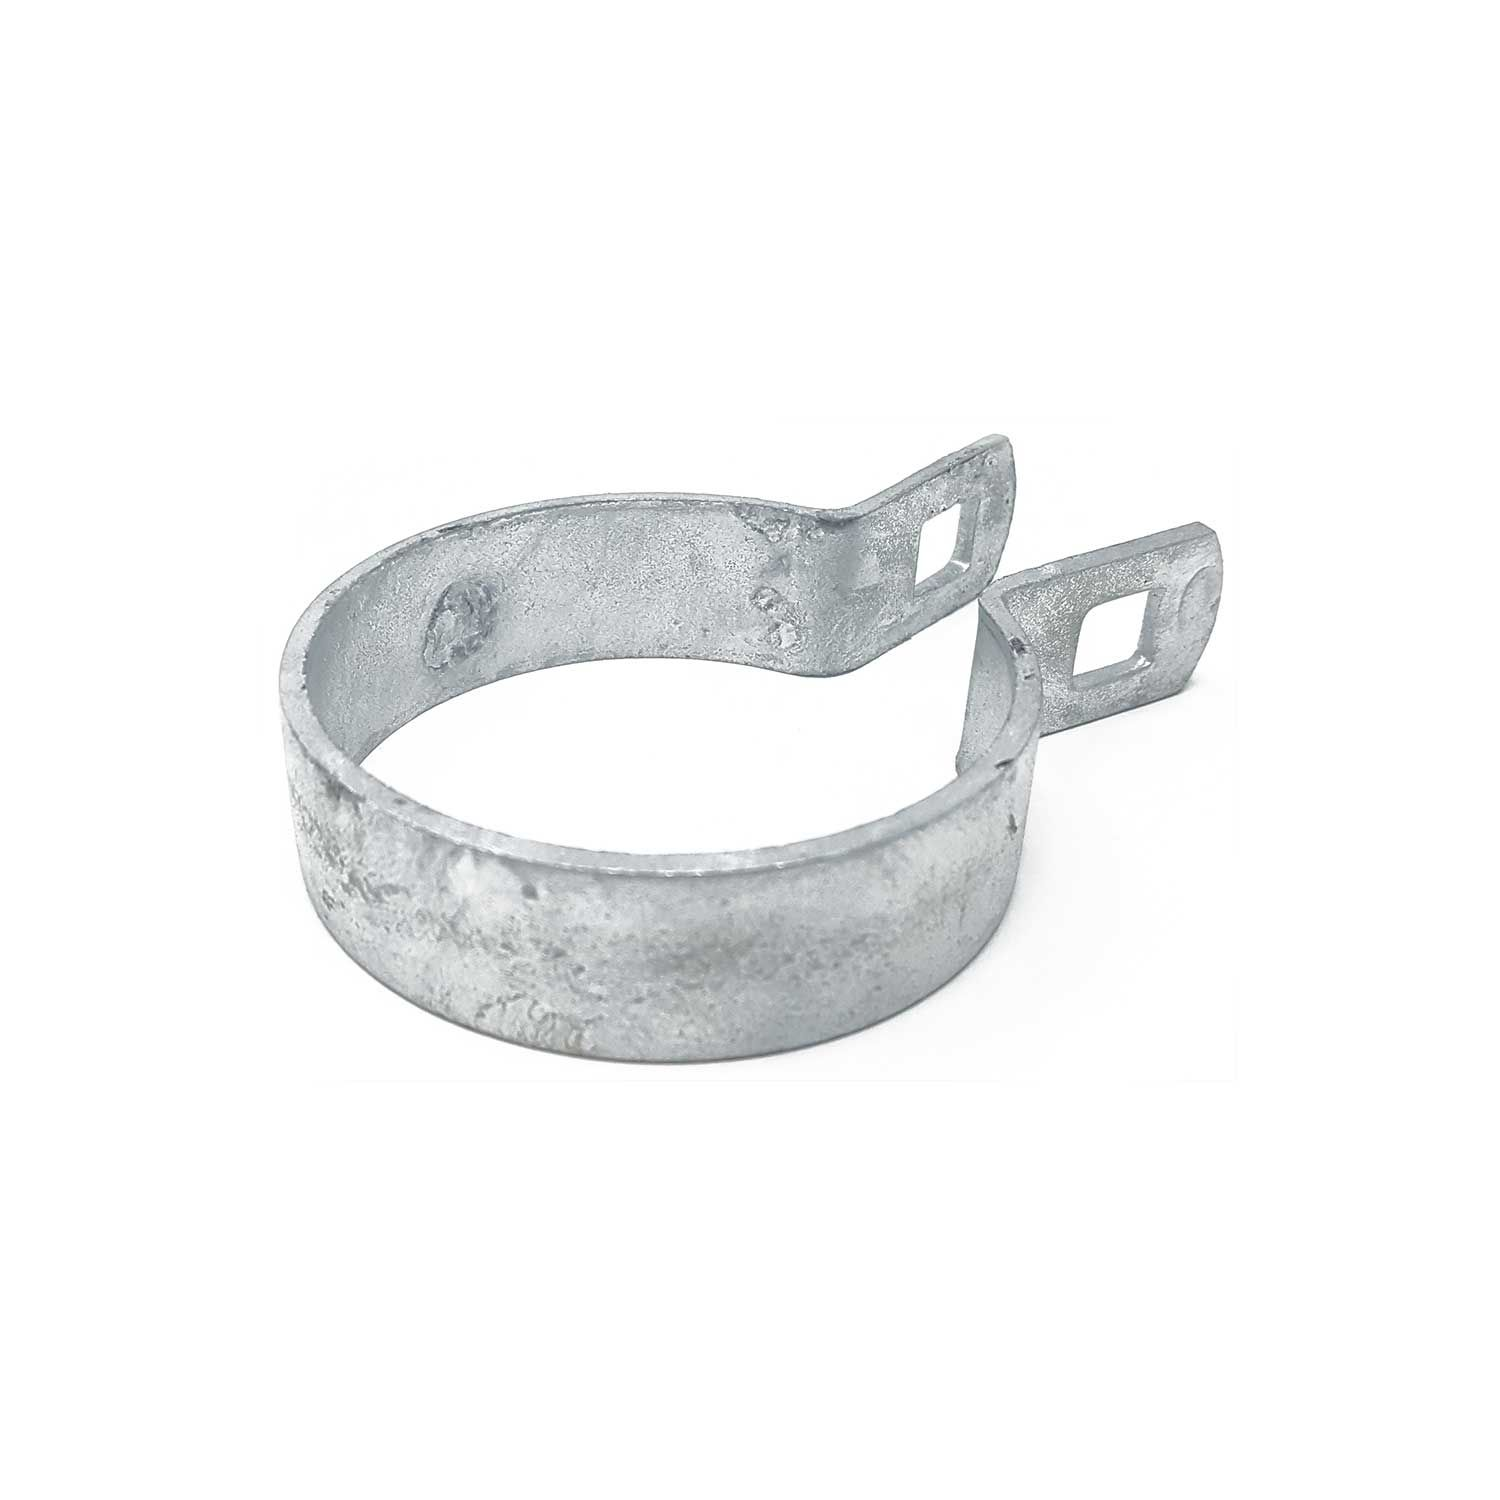 Chain Link Fence Flat Brace Bands - Galvanized